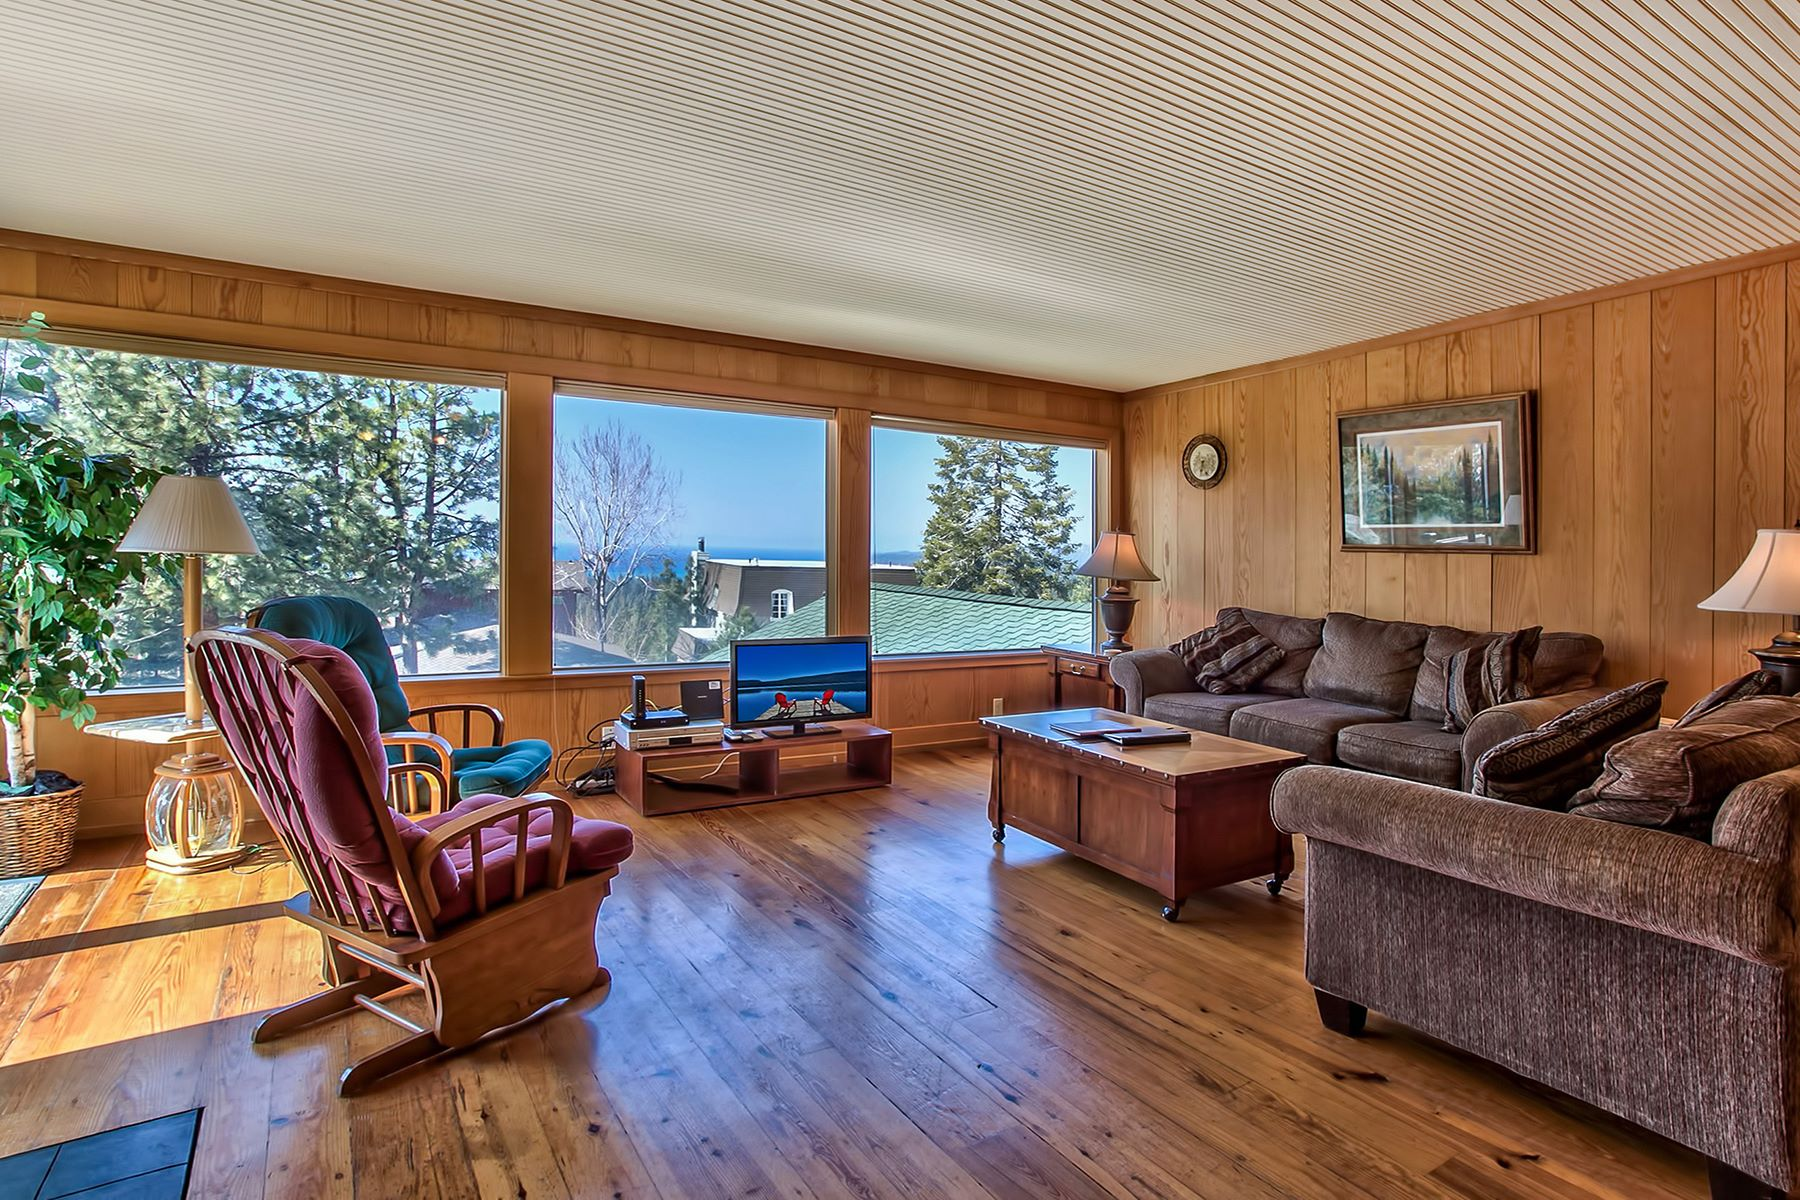 Additional photo for property listing at 3802 Lucinda Court , South lake Tahoe, CA 3802 Lucinda Court 南太浩湖, 加利福尼亚州 96150 美国